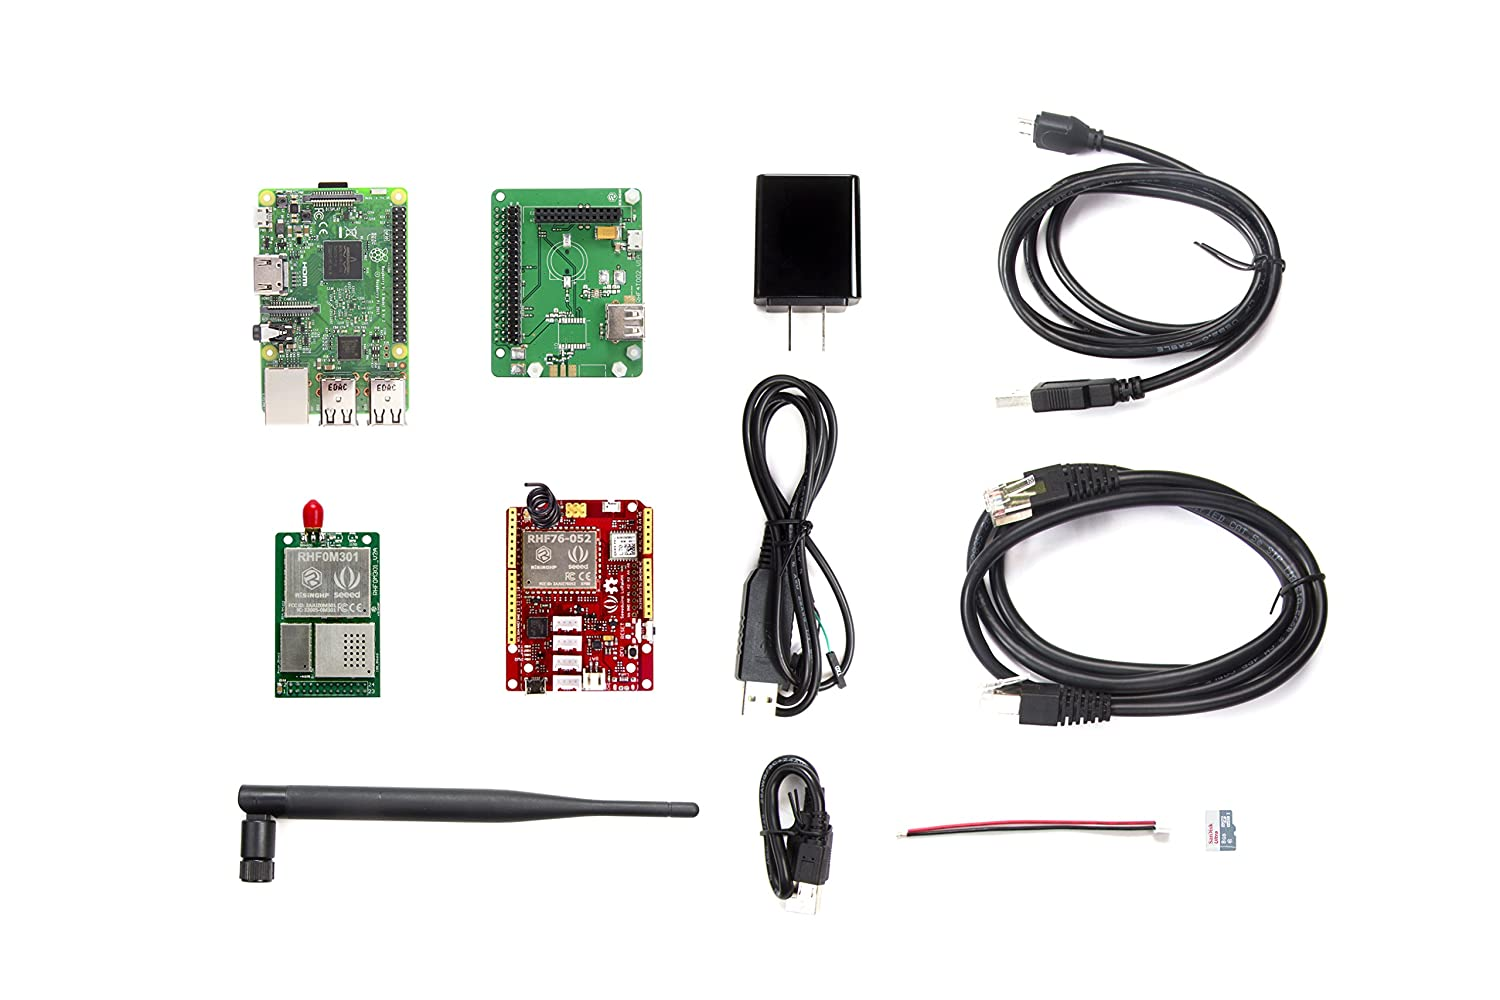 Seeedstudio LoRa LoRaWAN Gateway - 868MHz Kit with Raspberry Pi 3